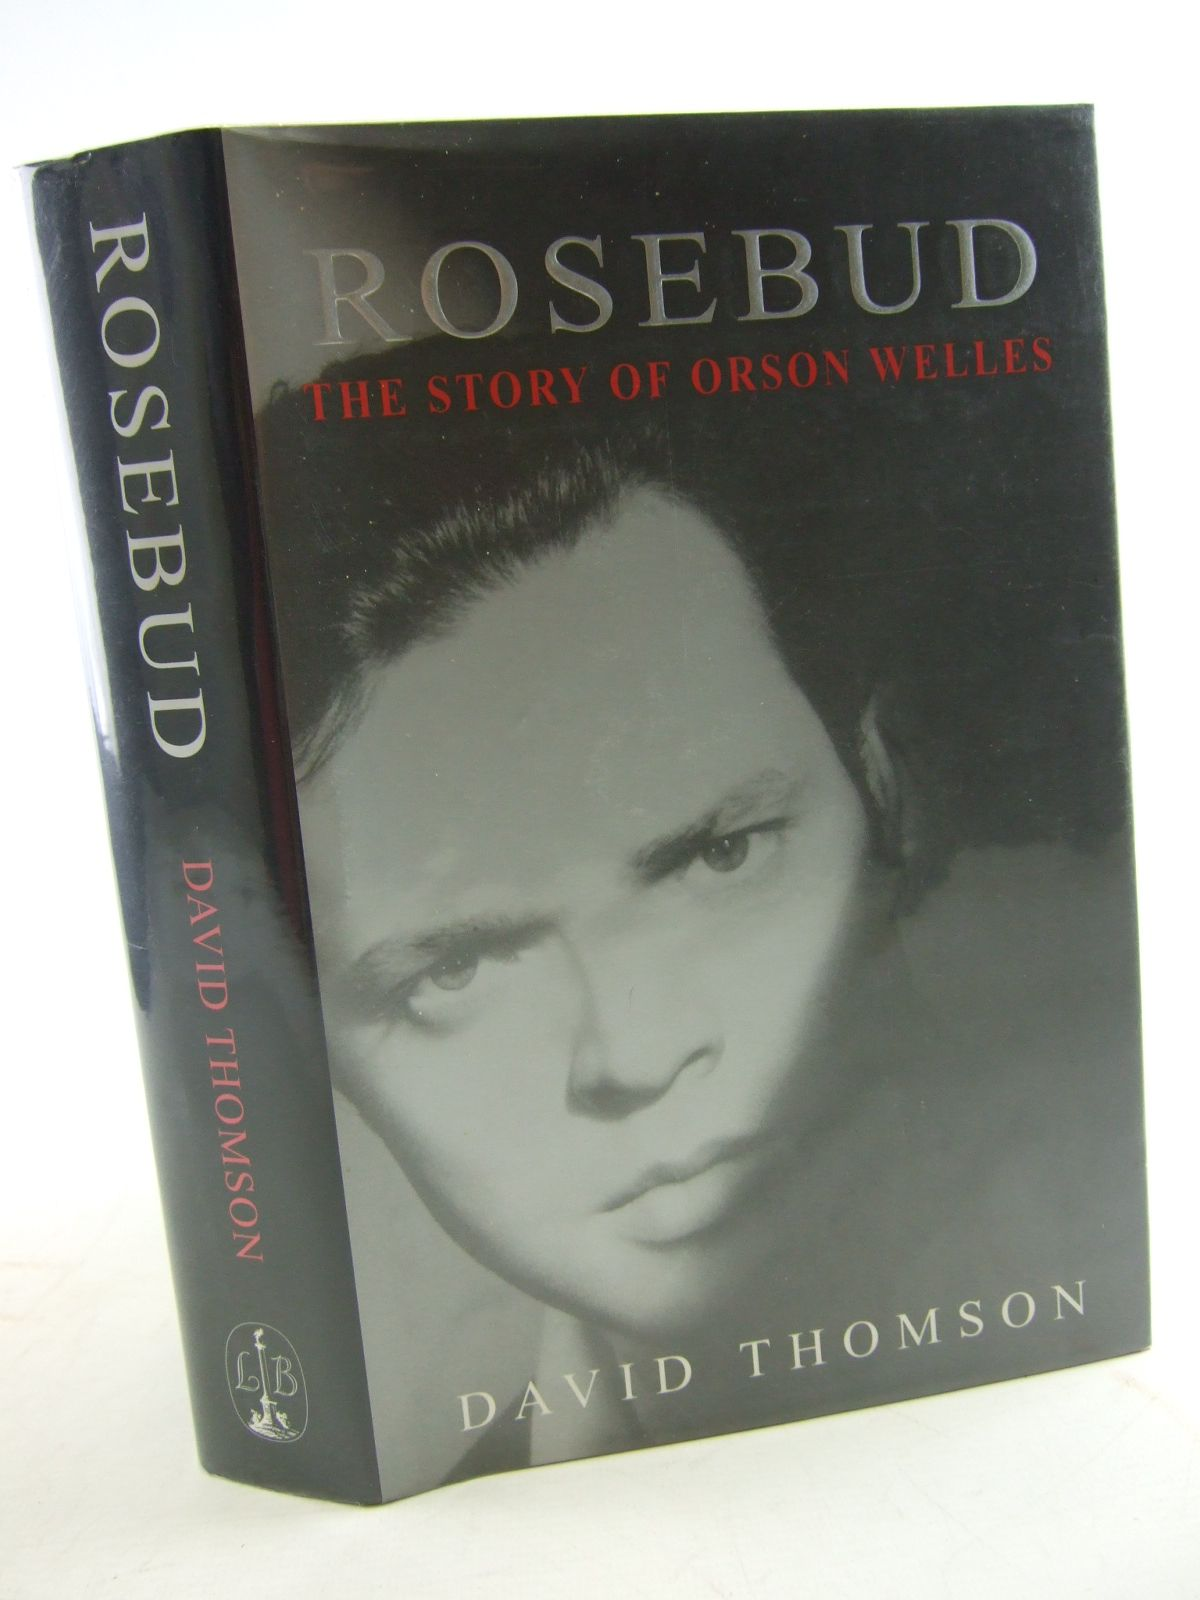 Photo of ROSEBUD THE STORY OF ORSON WELLES written by Thomson, David published by Little, Brown and Company (STOCK CODE: 1805531)  for sale by Stella & Rose's Books